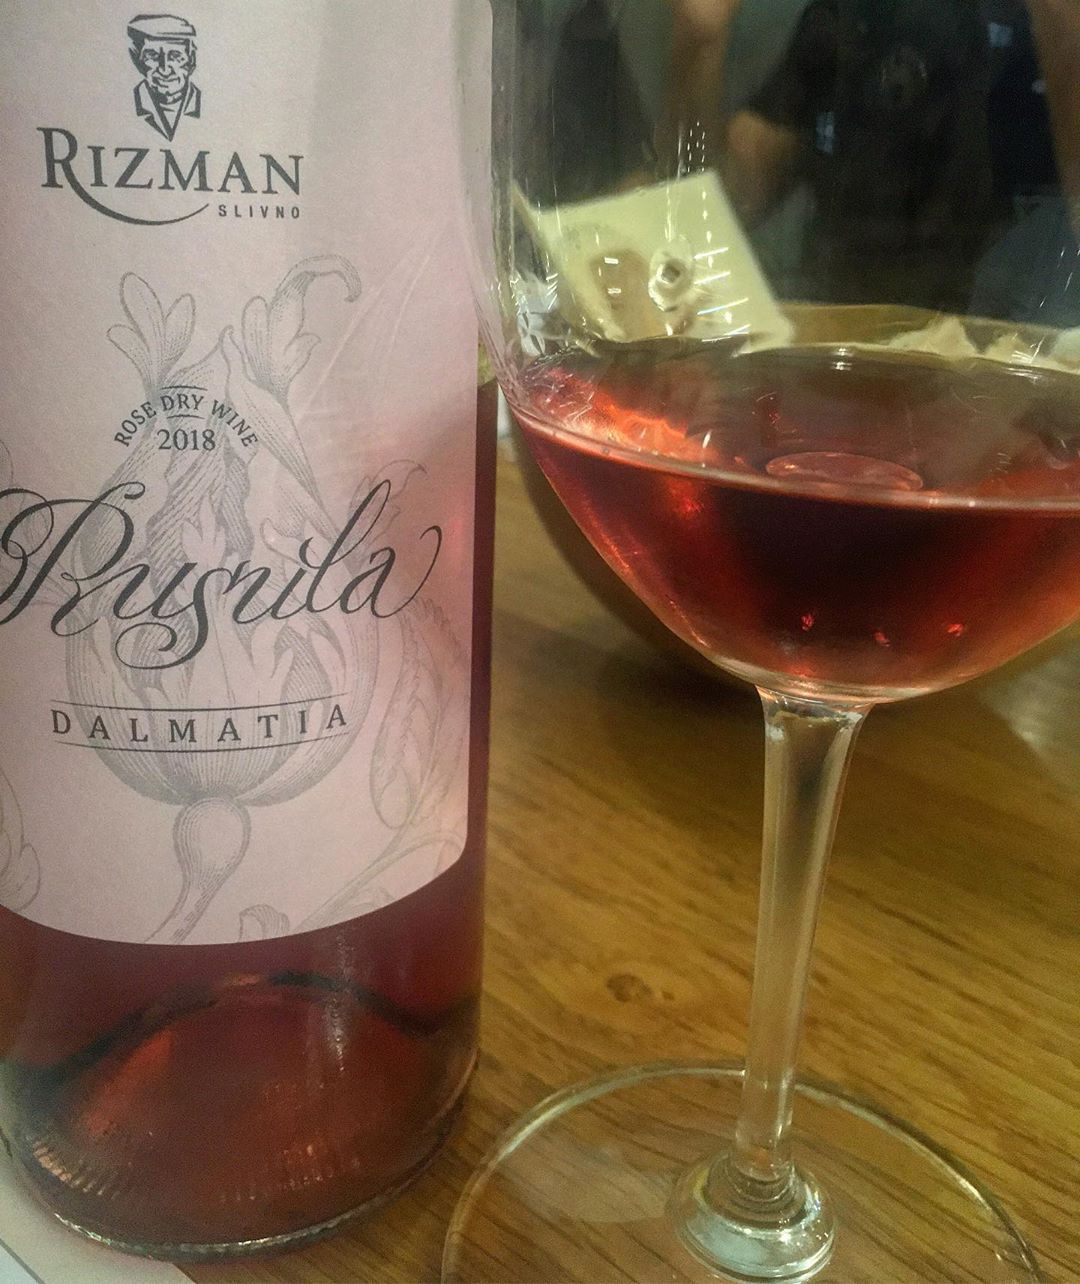 Gian Luca G On Instagram Vinarija Rizman Rusula 2018 90 Plavacmali 10 Syrah Skin Contact 20 Minutes It Has Distinctive Ar Sour Cherry Aromas